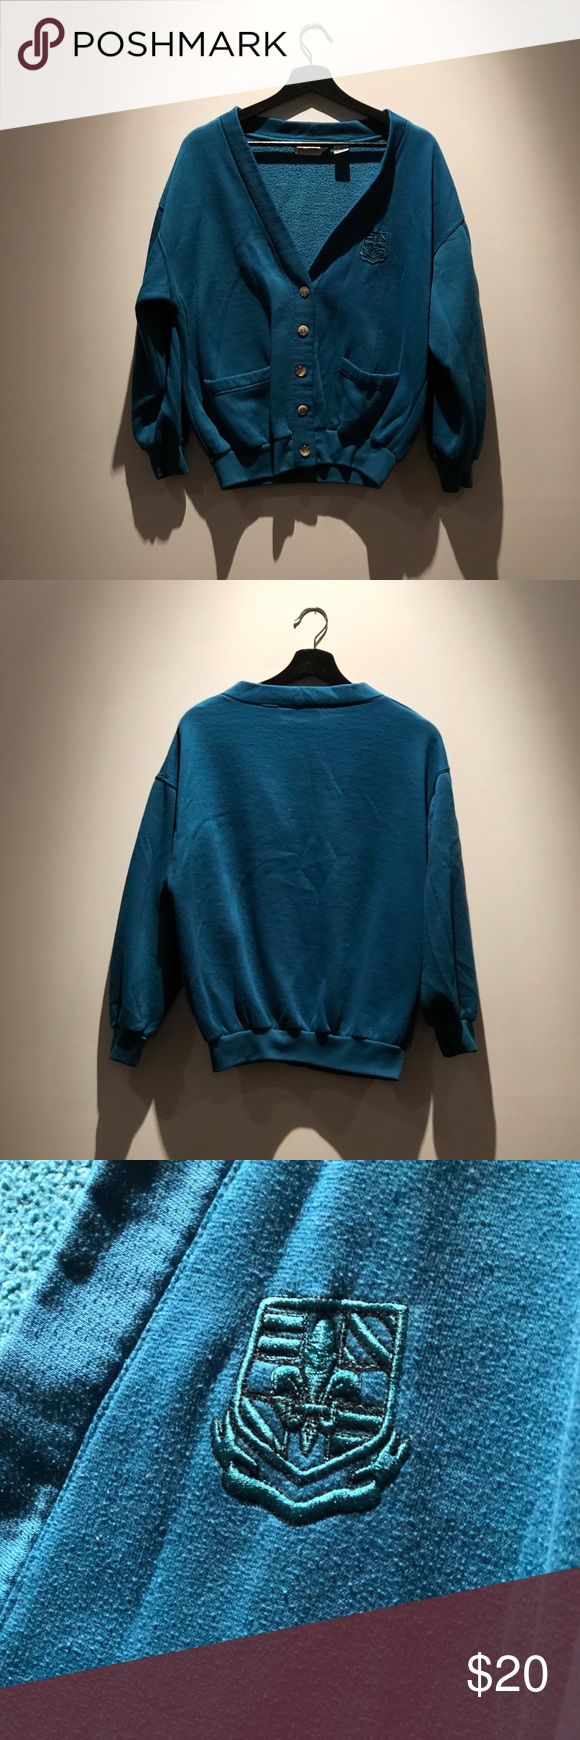 Ivy club classics teal embroidered sweater Ivy club classics teal embroidered sweater -85% polyester  -15% cotton -medium  -sleeves run short(but I also have long arms 😂) -loose fit Sweaters Cardigans